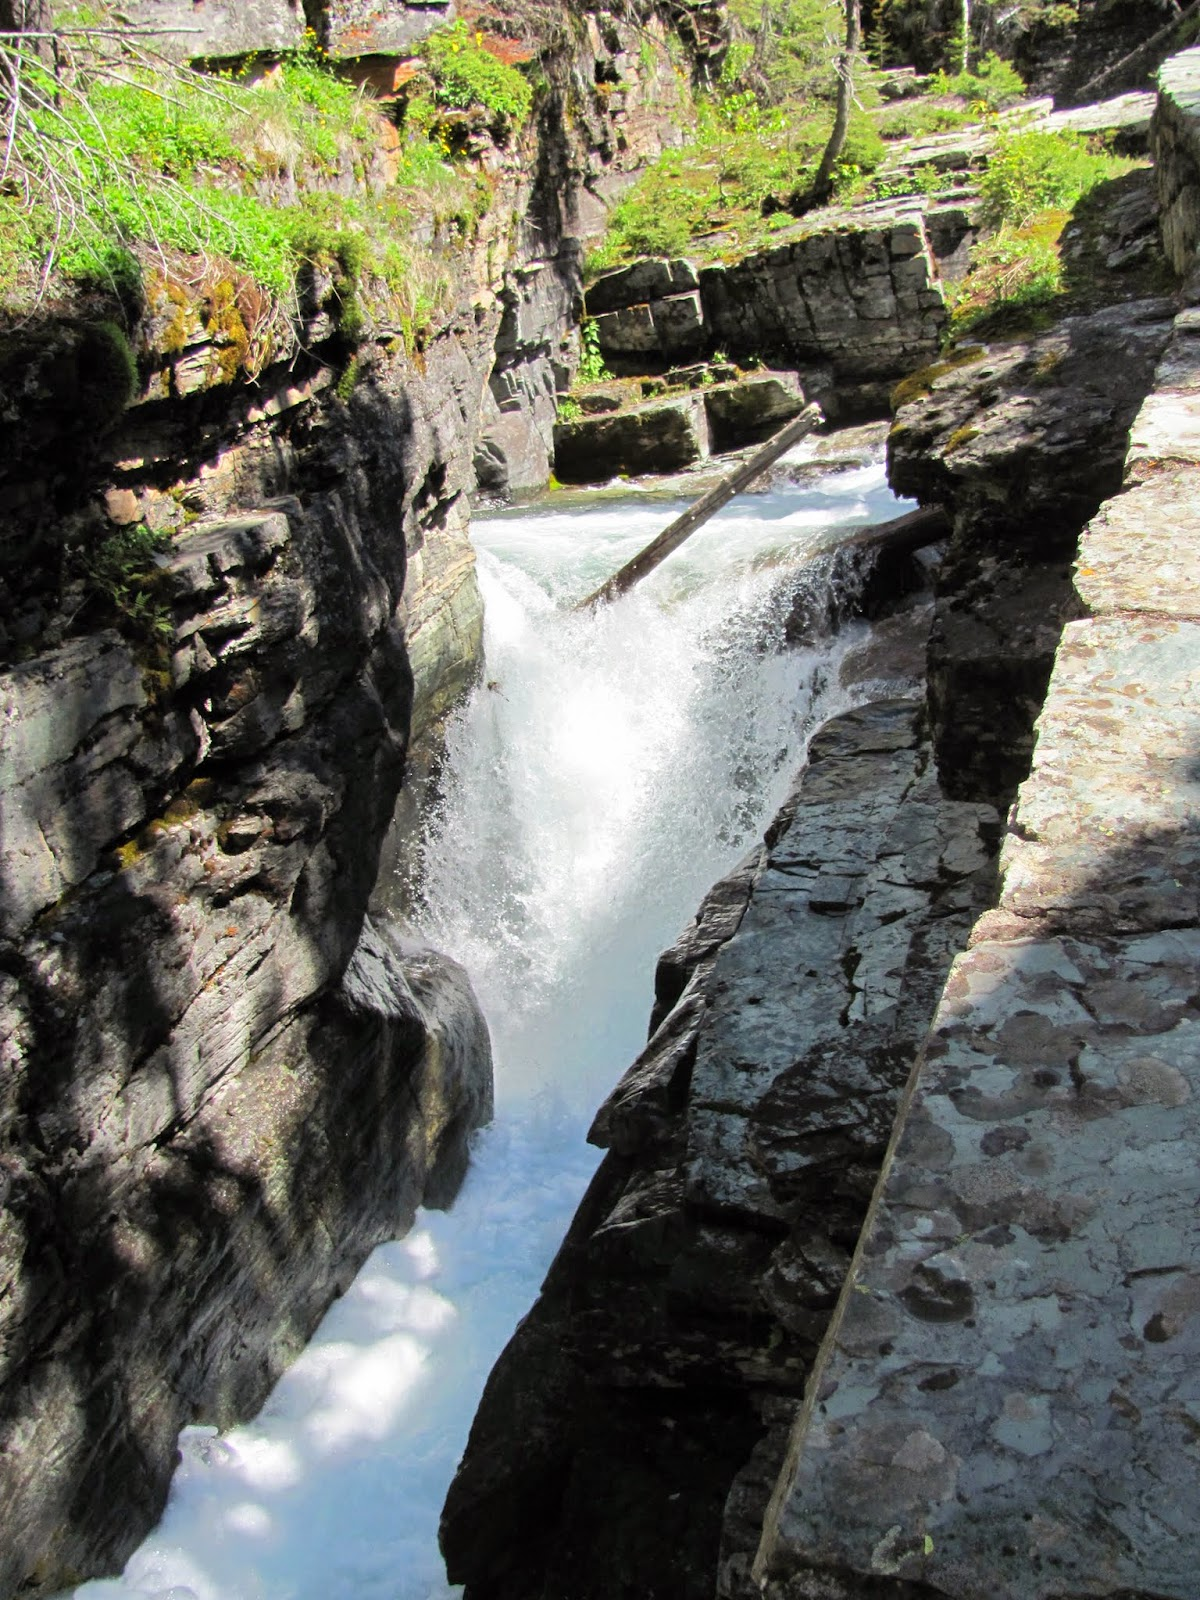 Glacial meltwater erodes a narrow gorge at Glacier National Park in Montana